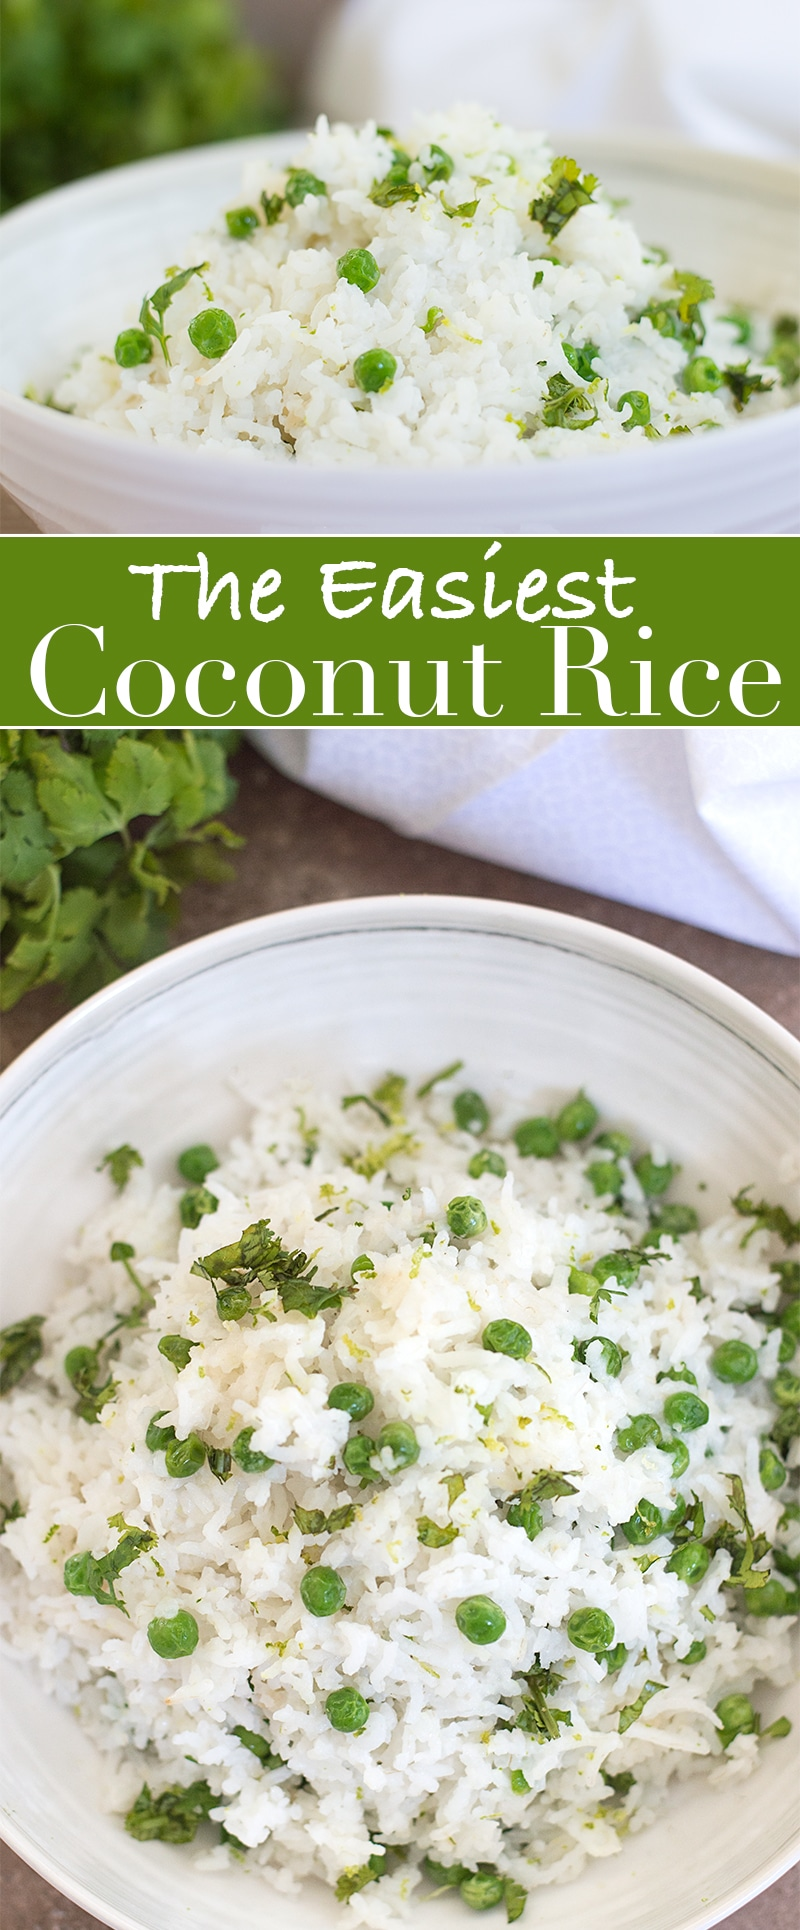 Coconut rice recipe made with easy ingredients that can be made in 25 minutes. Rinse the rice, add cooked peas, coconut milk. Garnish with lime and cilantro